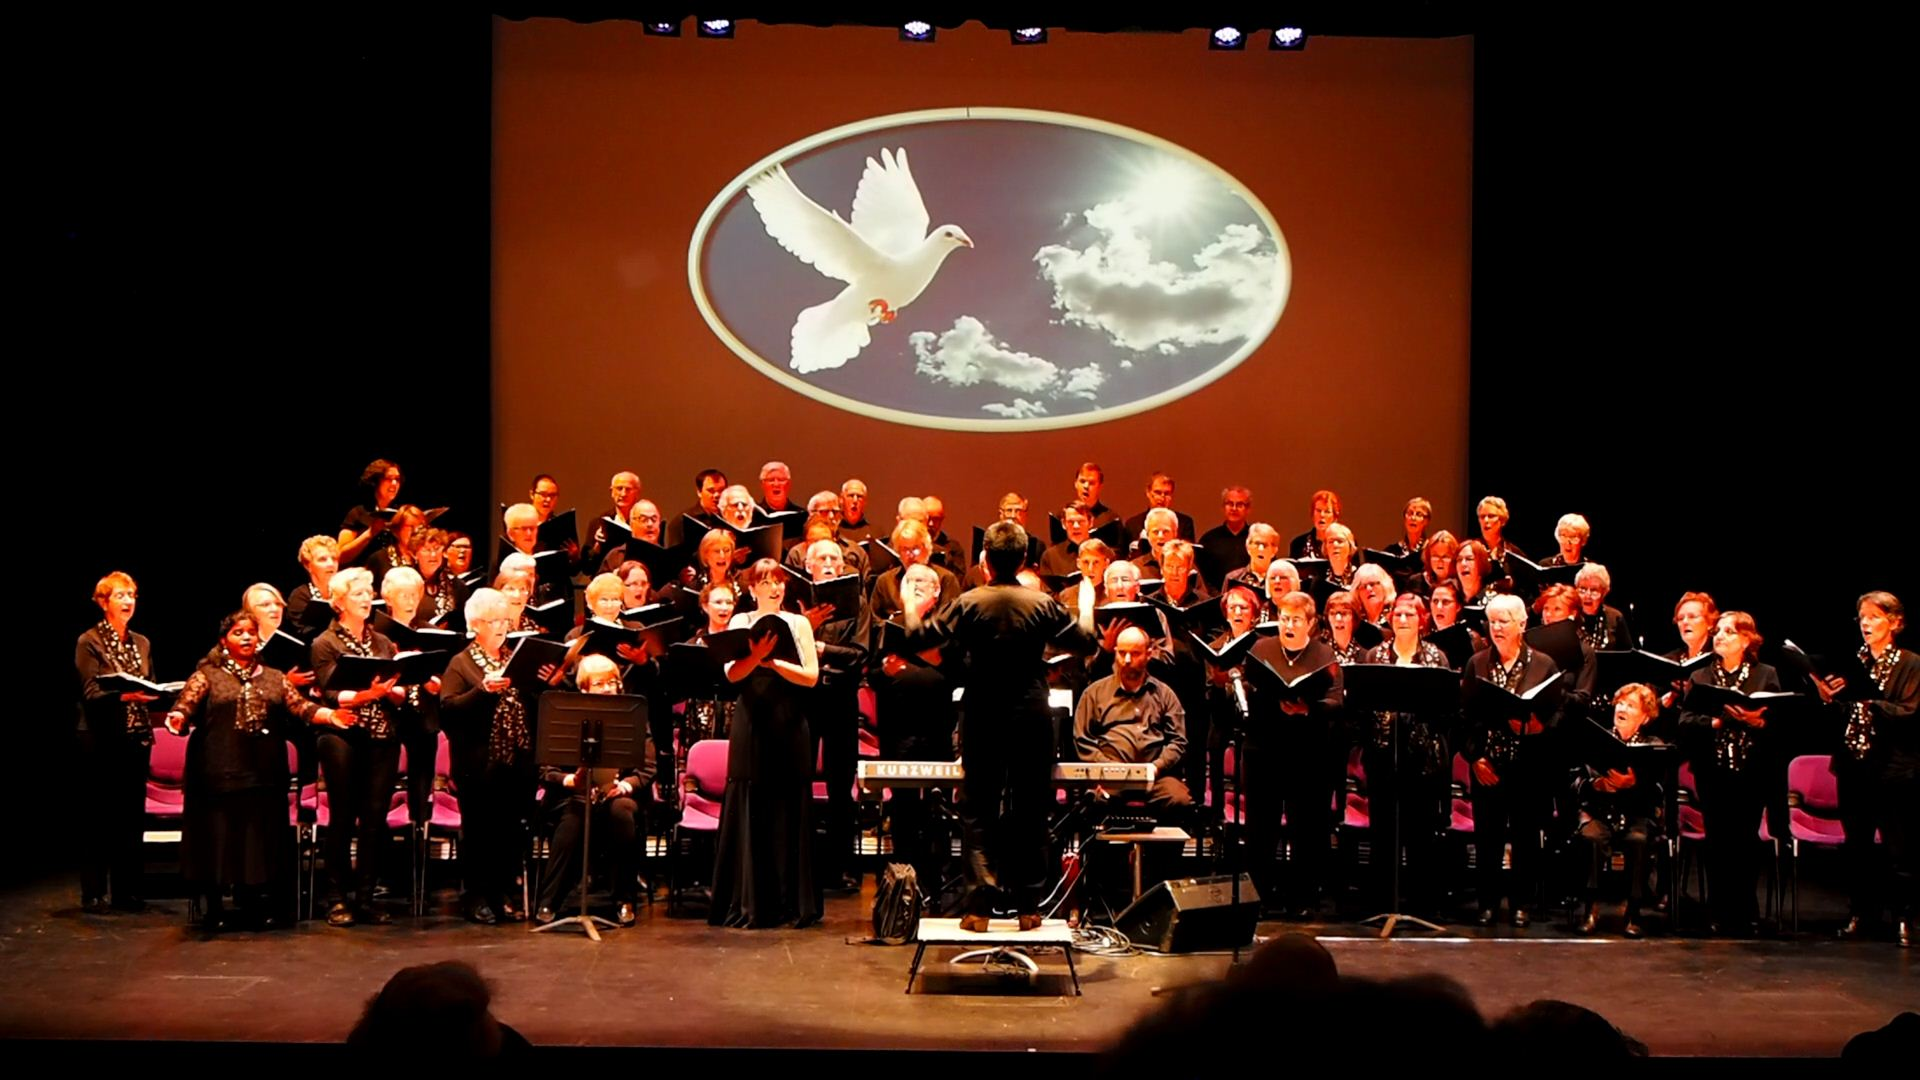 BOOK US - The Yarra Valley Singers would be delighted to perform at your next event.